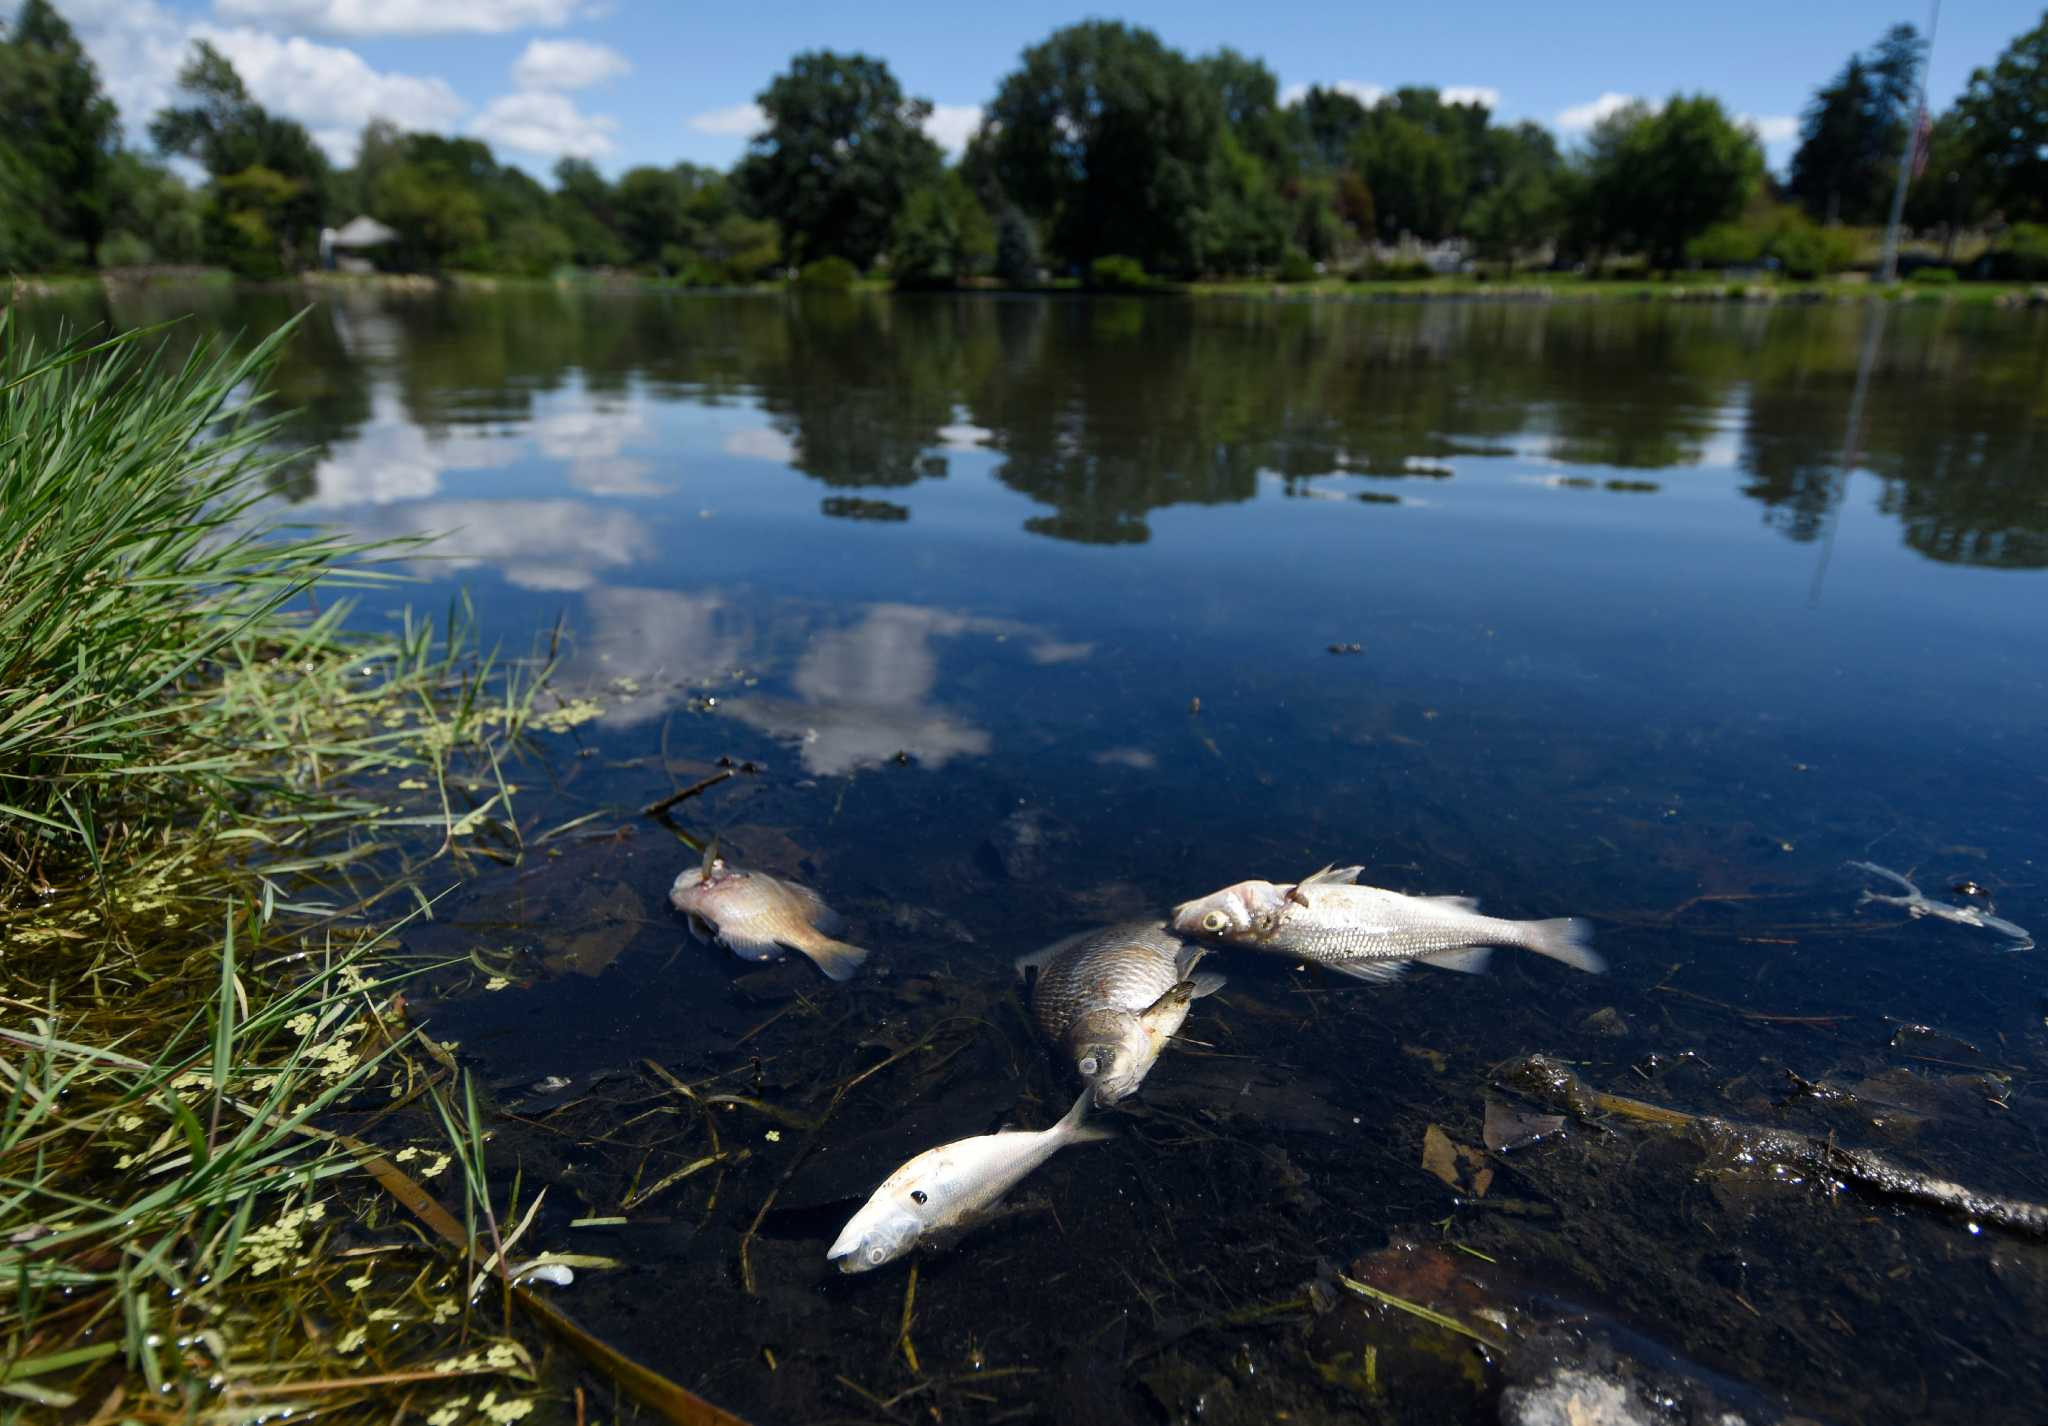 Dead fish appear in old greenwich pond greenwichtime for Fish stamford ct